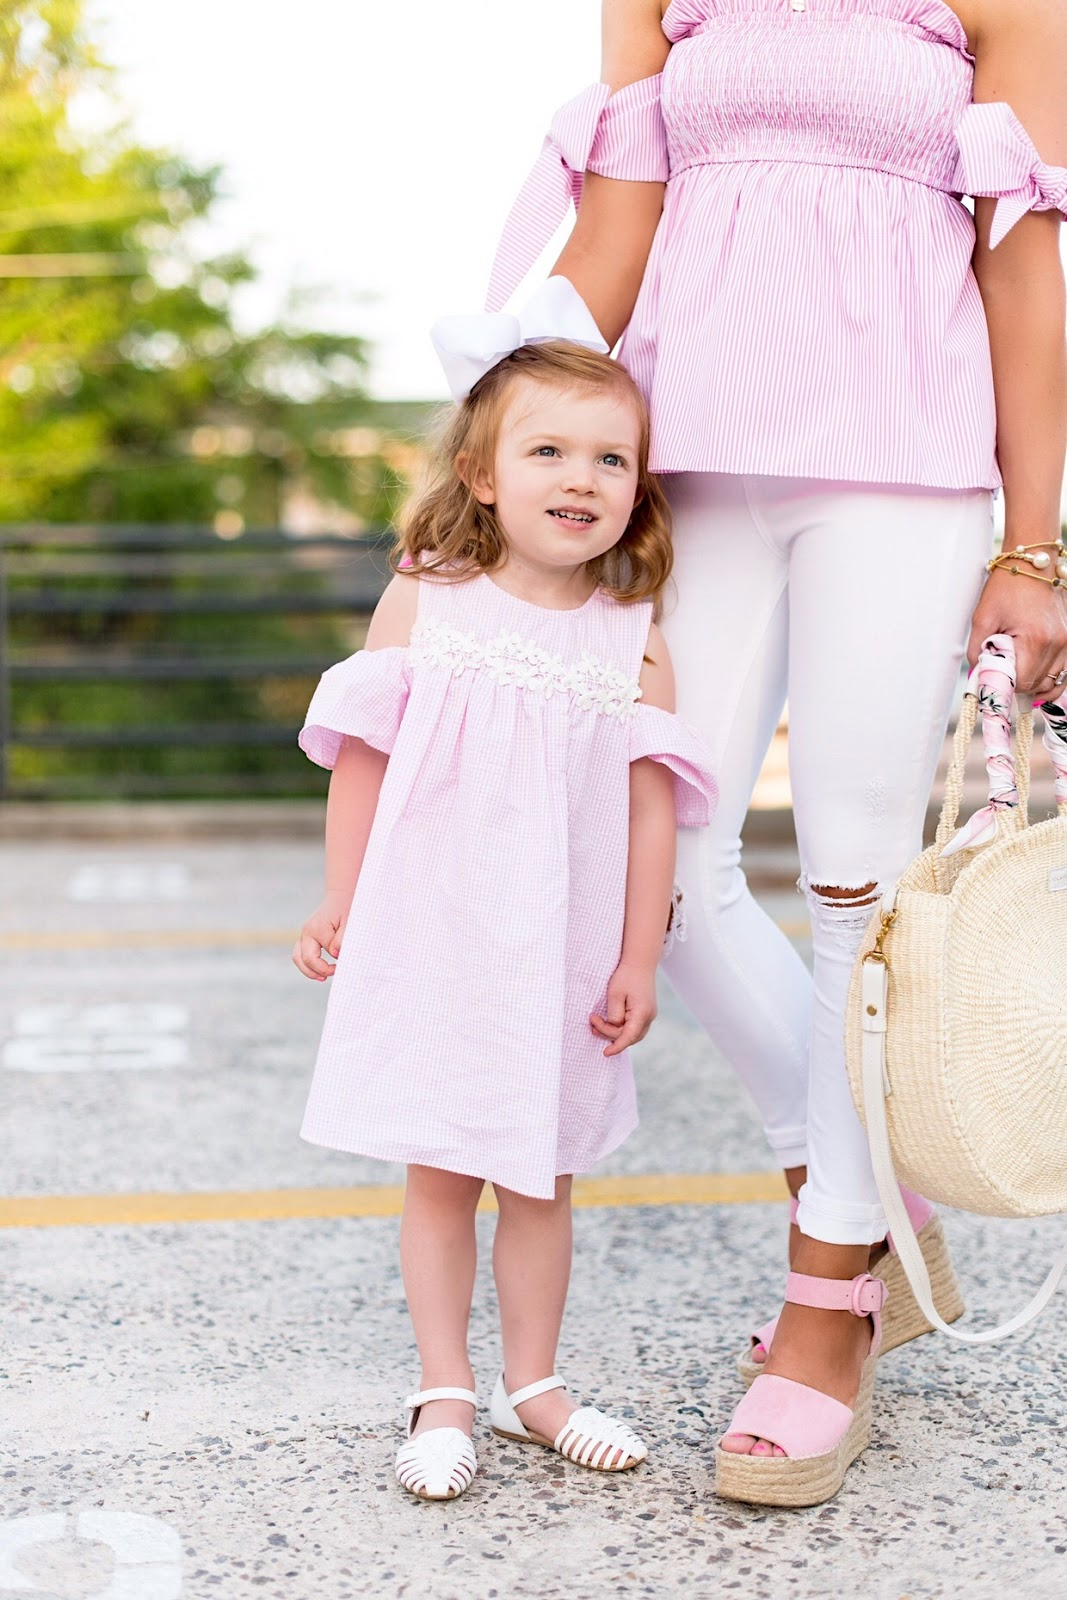 Mommy and Me in Pink and White - Something Delightful Blog